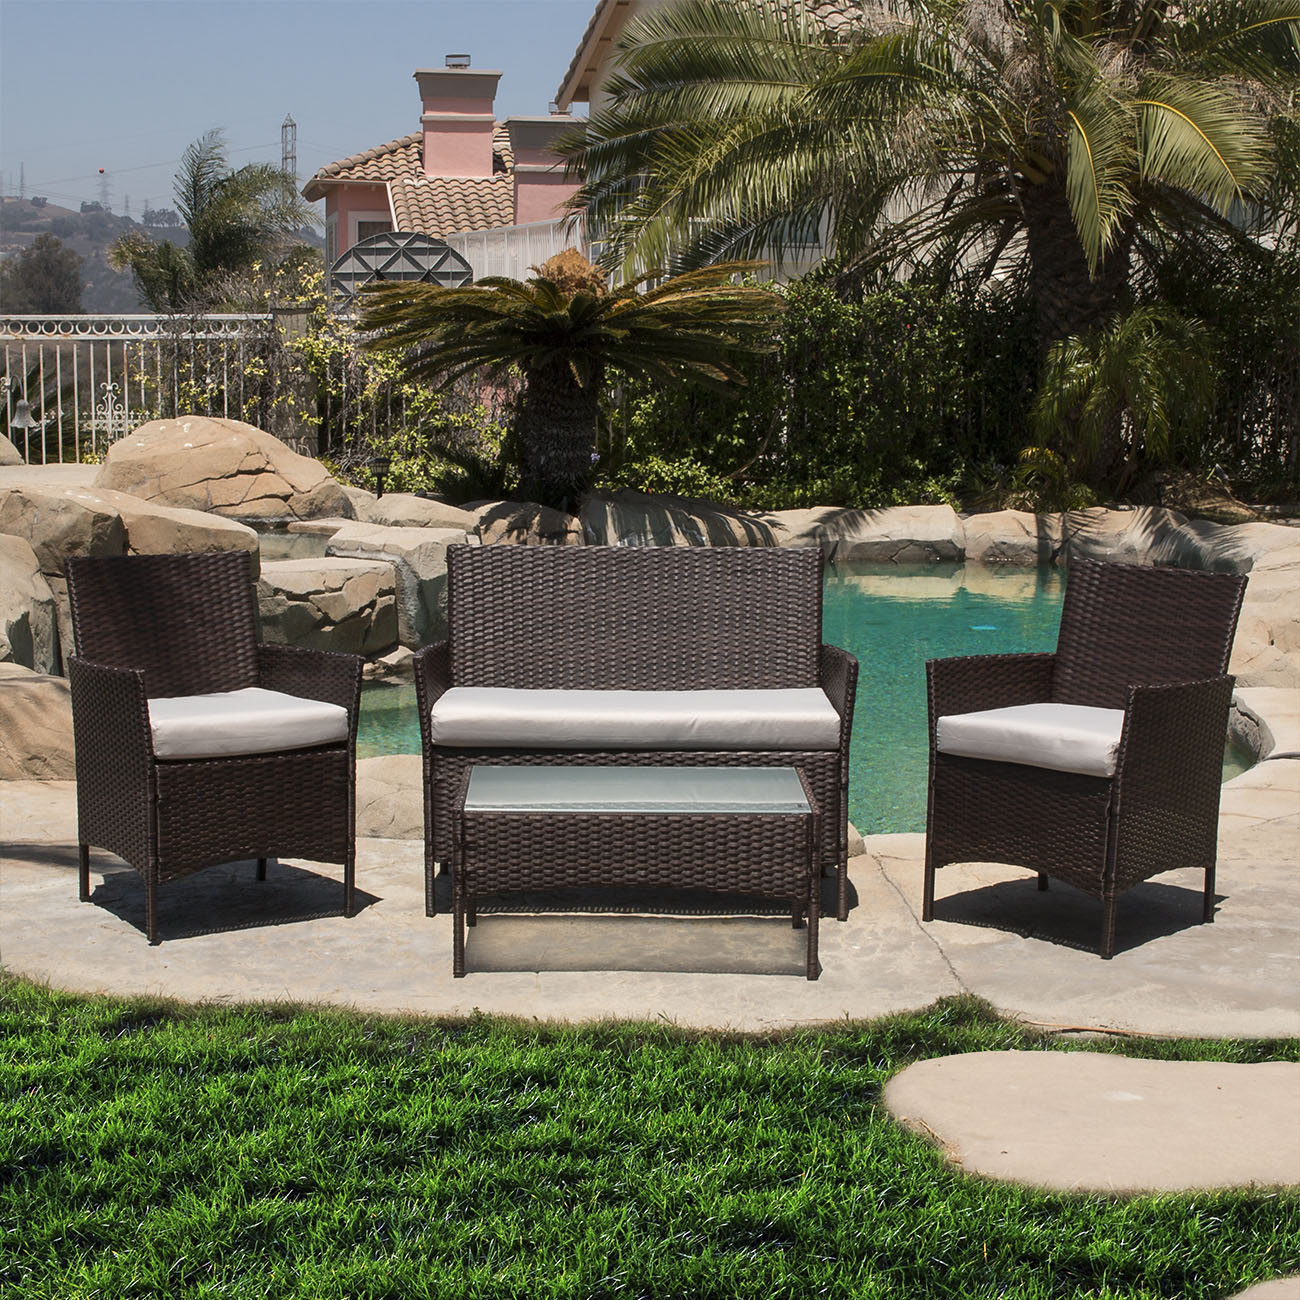 4 pc rattan furniture set outdoor patio garden sectional for Outdoor furniture wicker